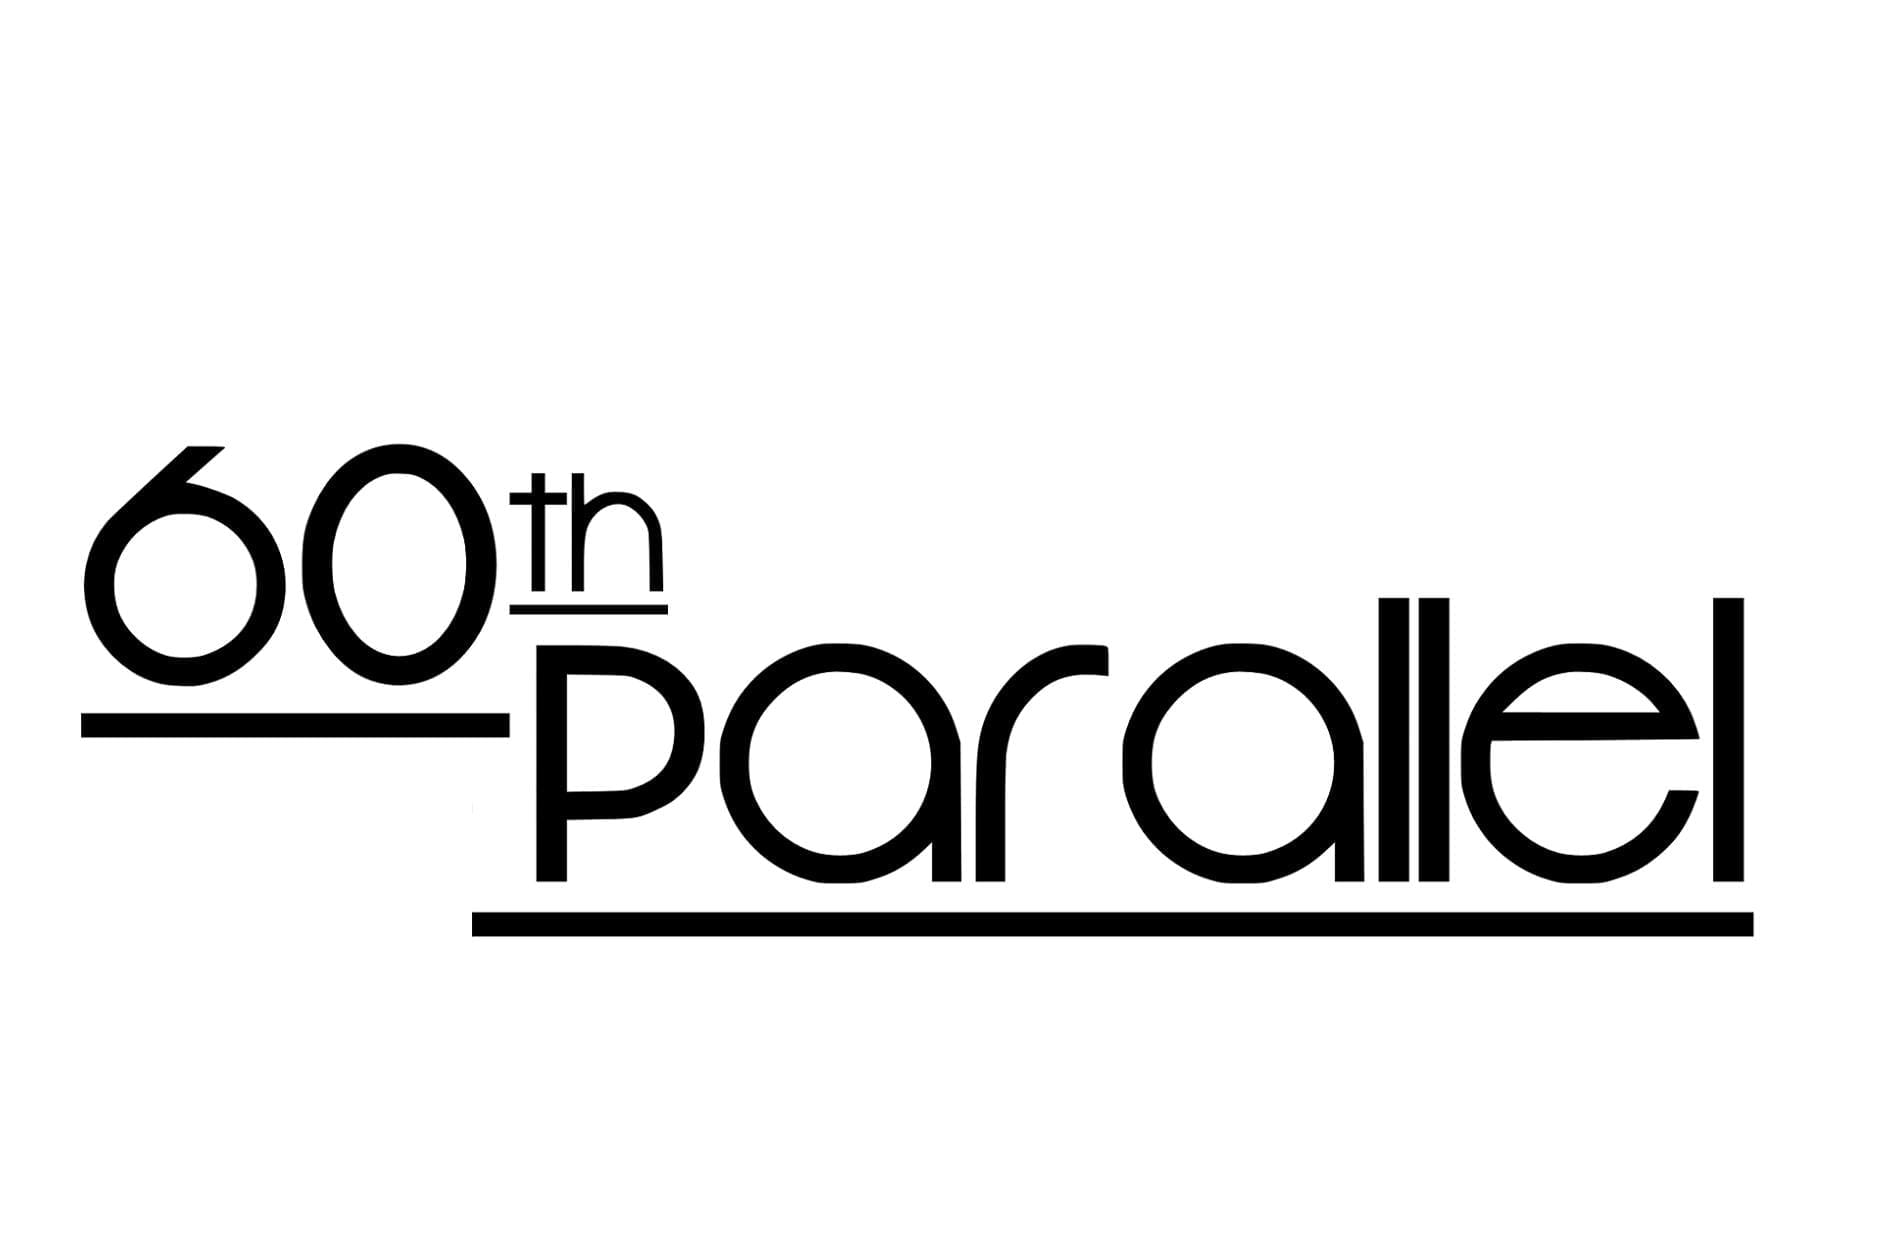 60th Parallel